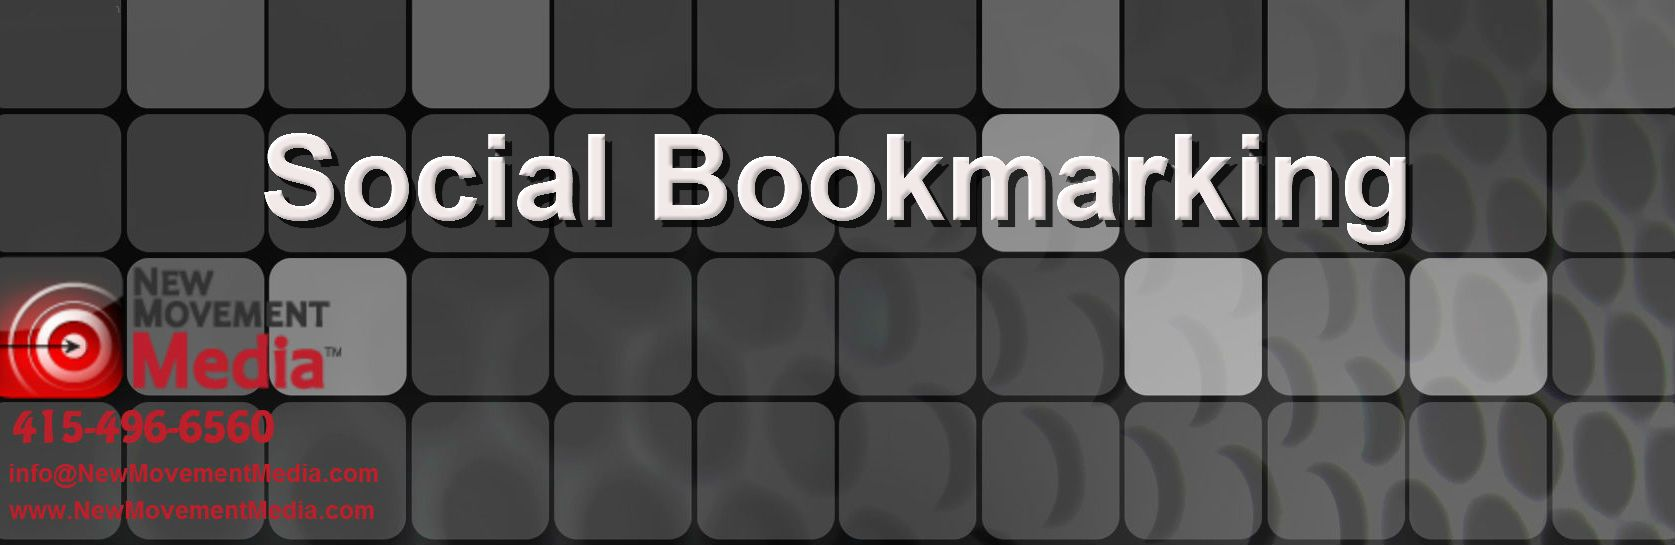 What Is Social Bookmarking? and Will It Help Your Online Business